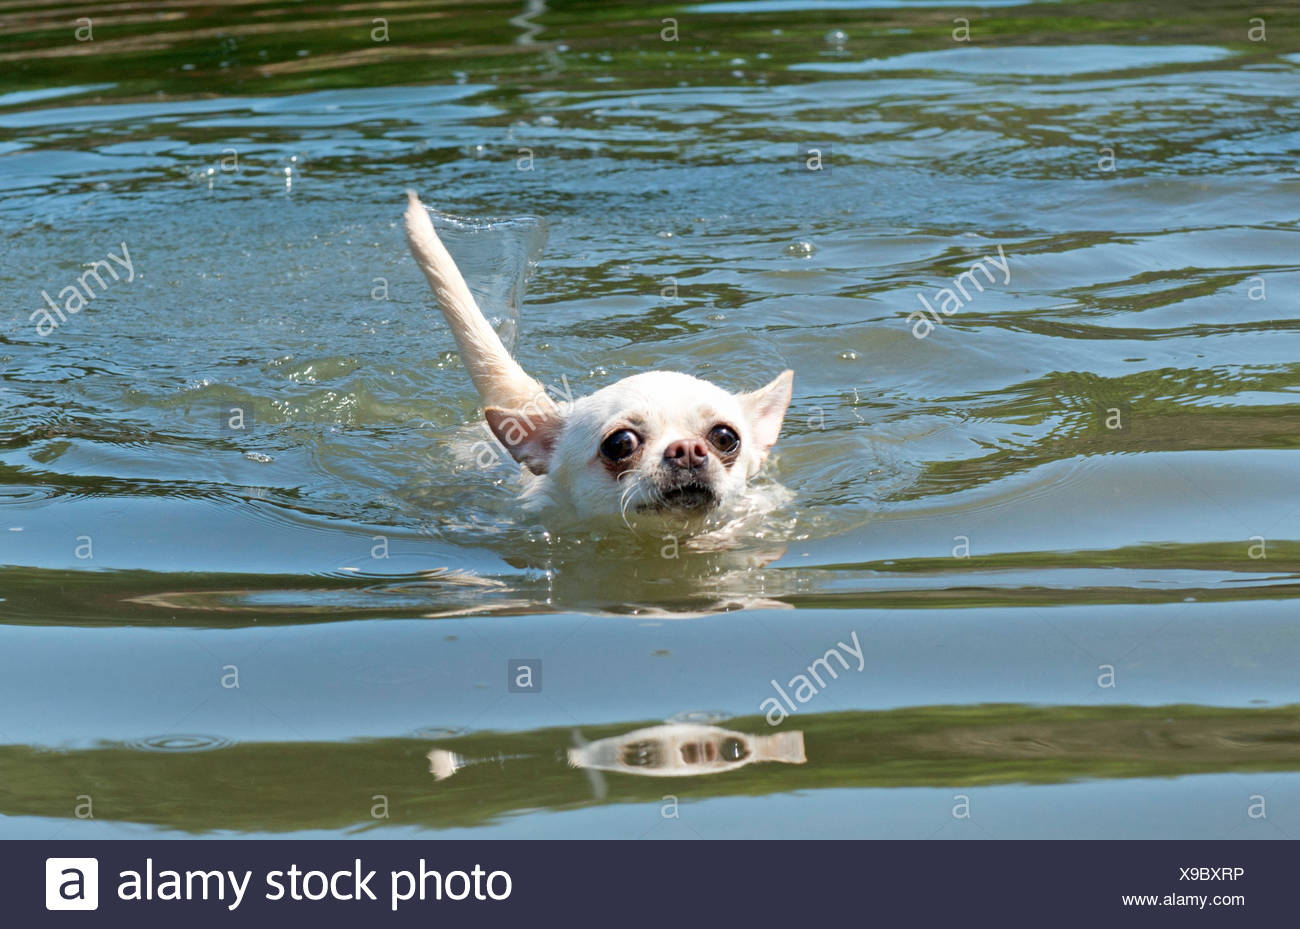 holiday, vacation, holidays, vacations, dog, puppy, salt water, sea, ocean, Stock Photo